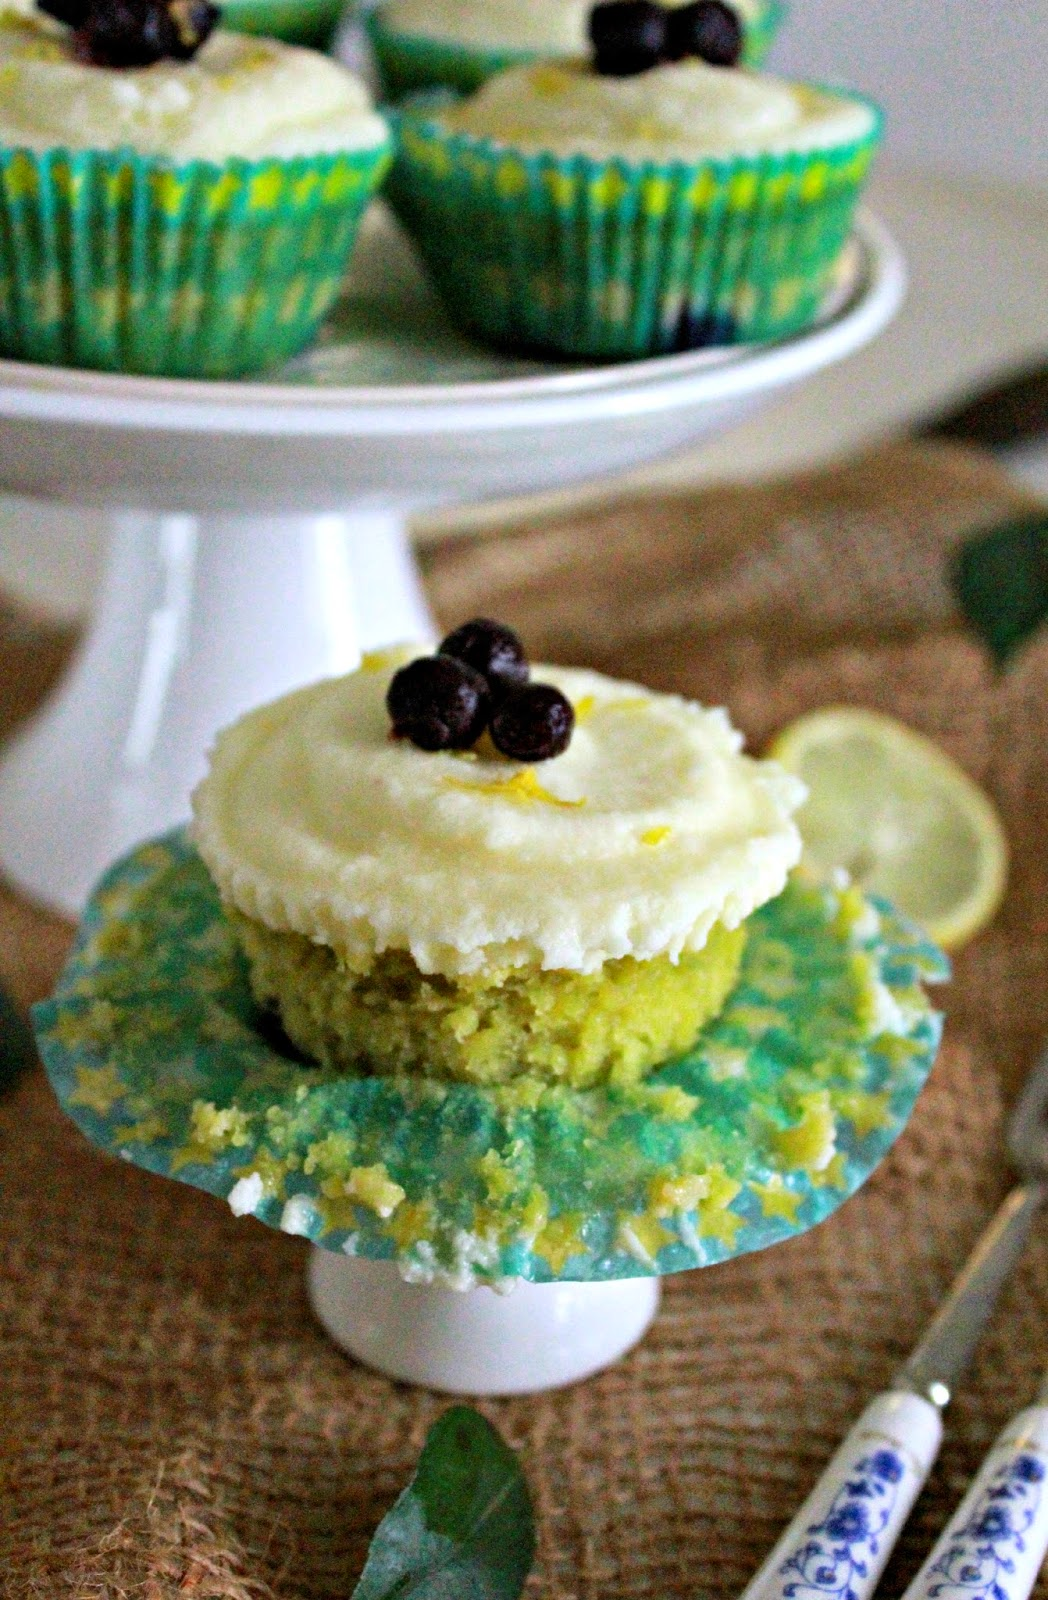 ... Lemon & Blueberry Cupcake with Lemon Curd Whipped Cream Frosting